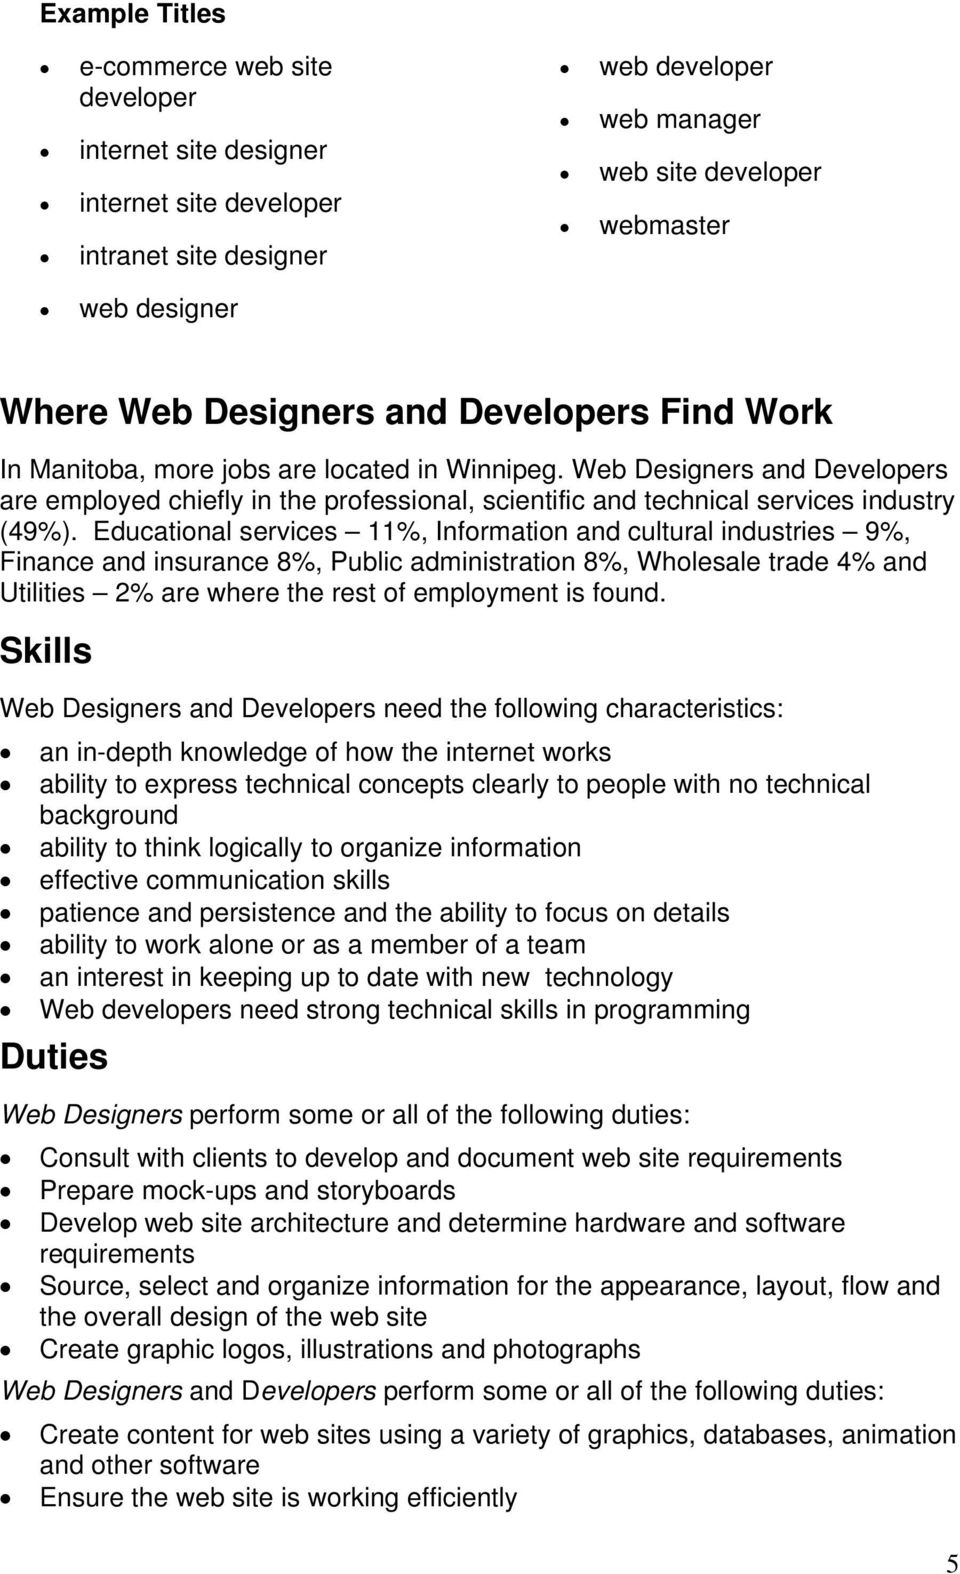 Web Designers and Developers are employed chiefly in the professional, scientific and technical services industry (49%).